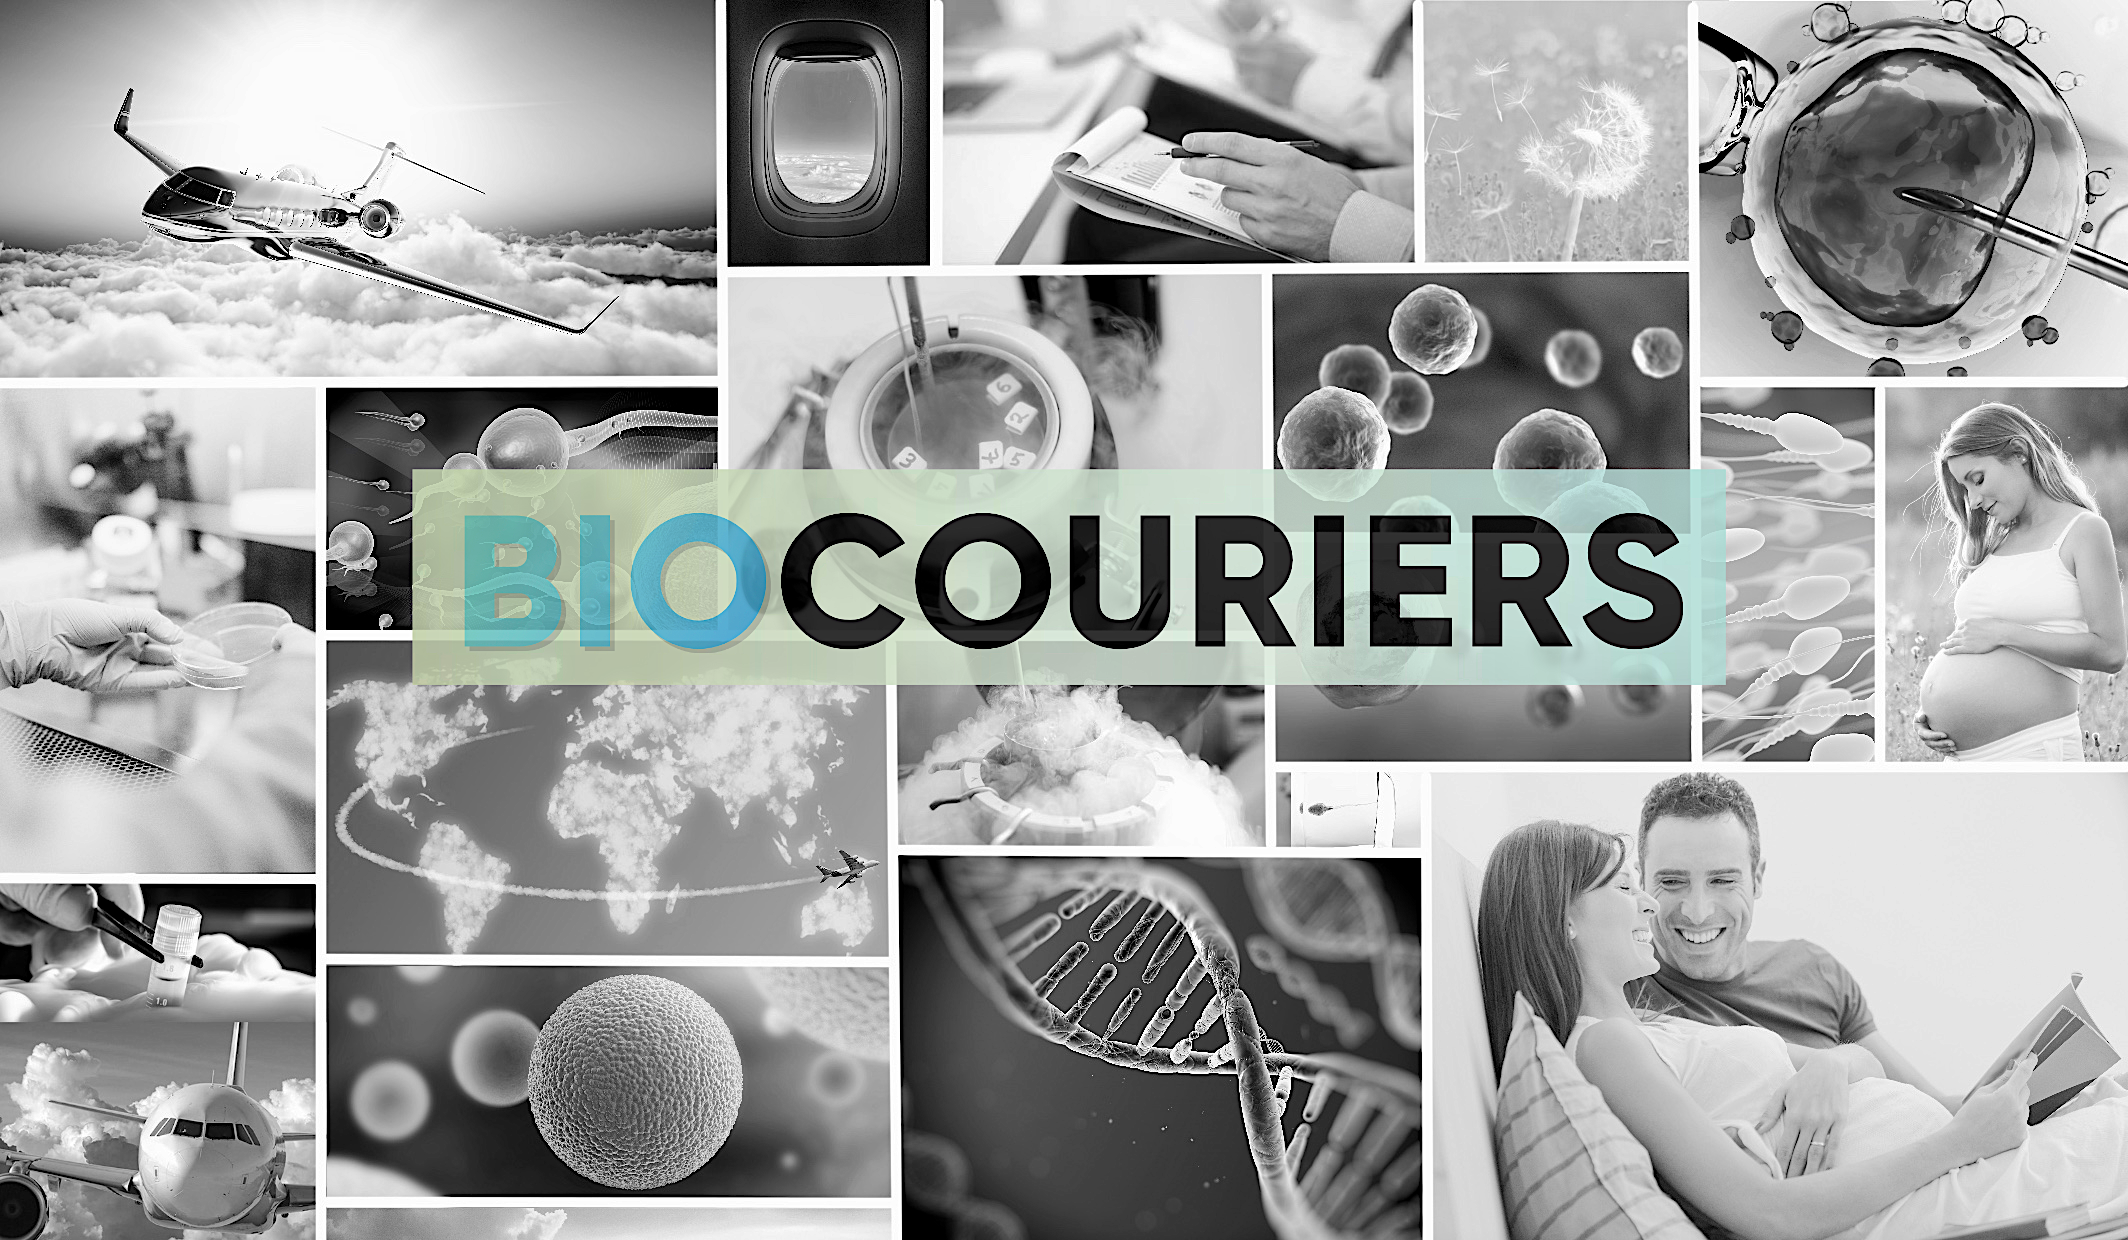 IVF couriers BioCouriers